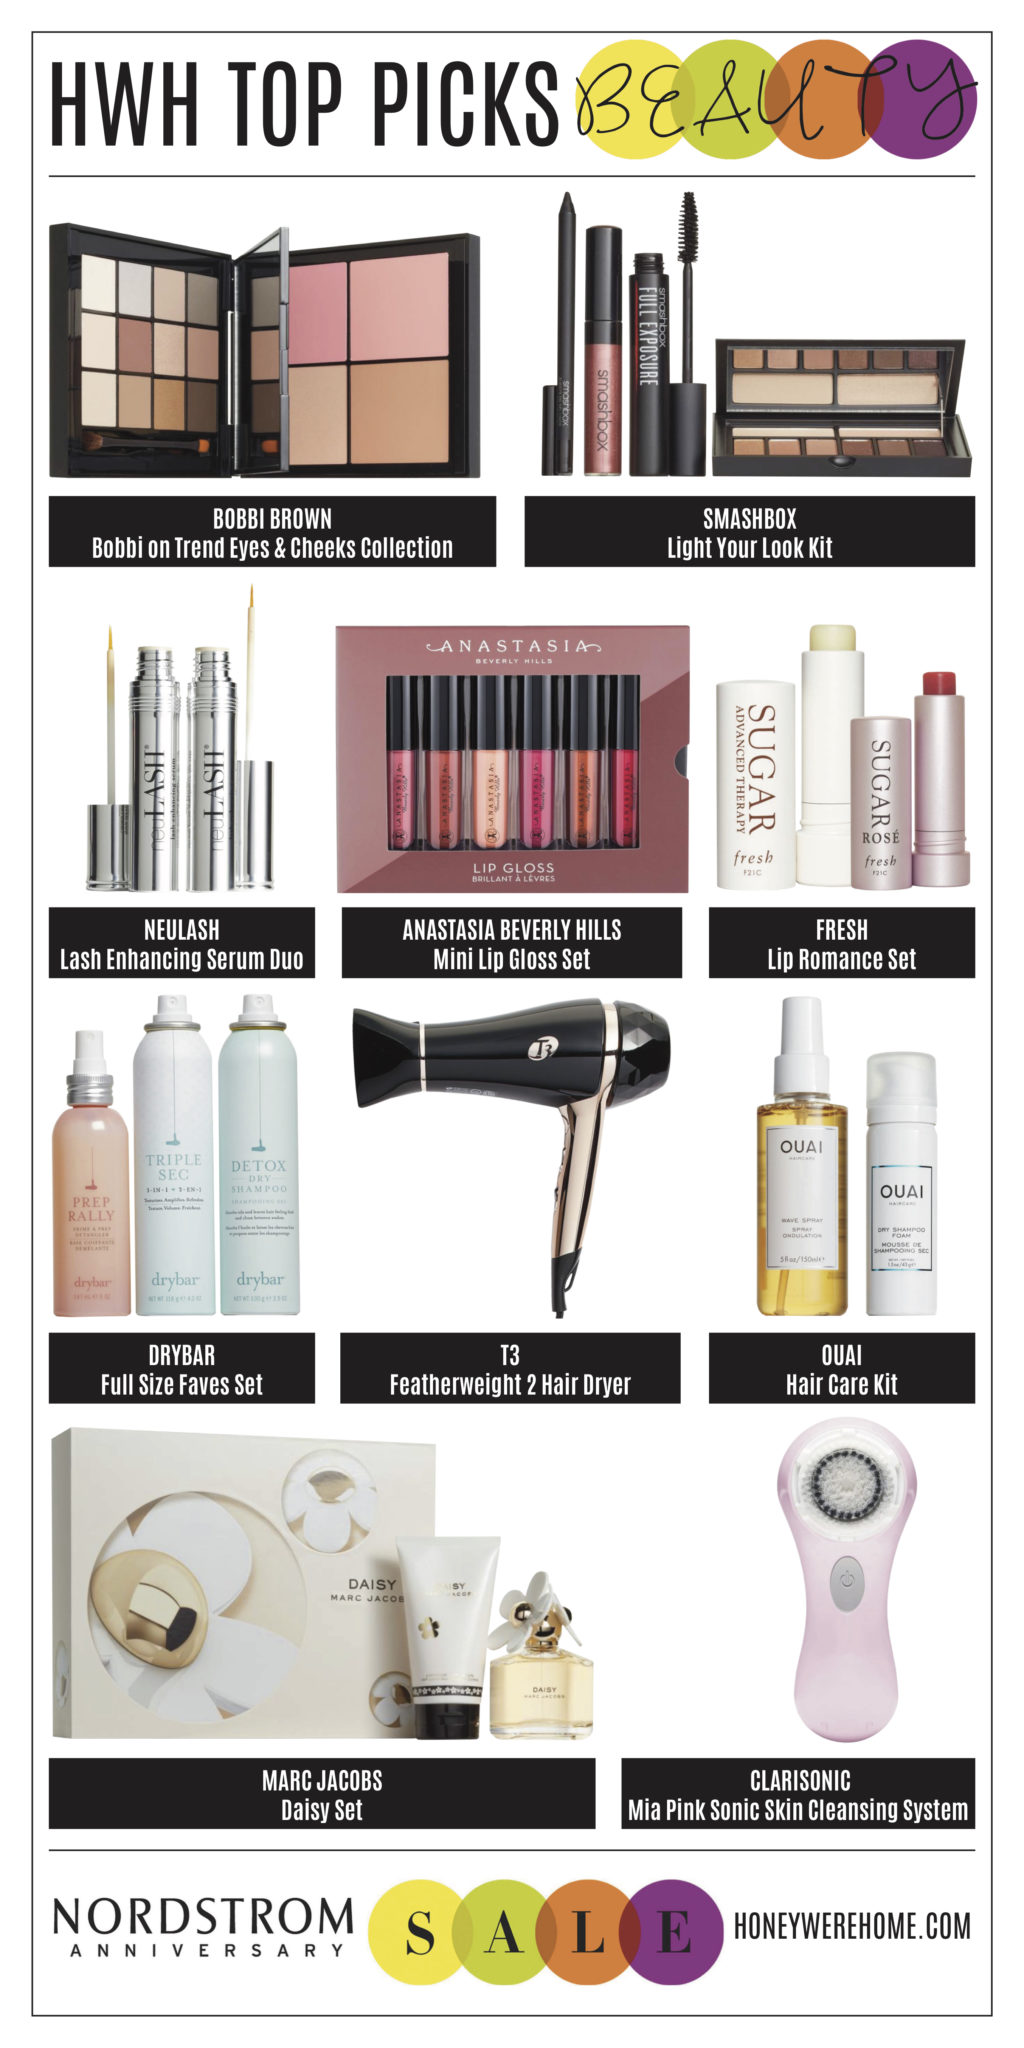 Nordstrom Anniversary Sale 2017 | Best of Beauty